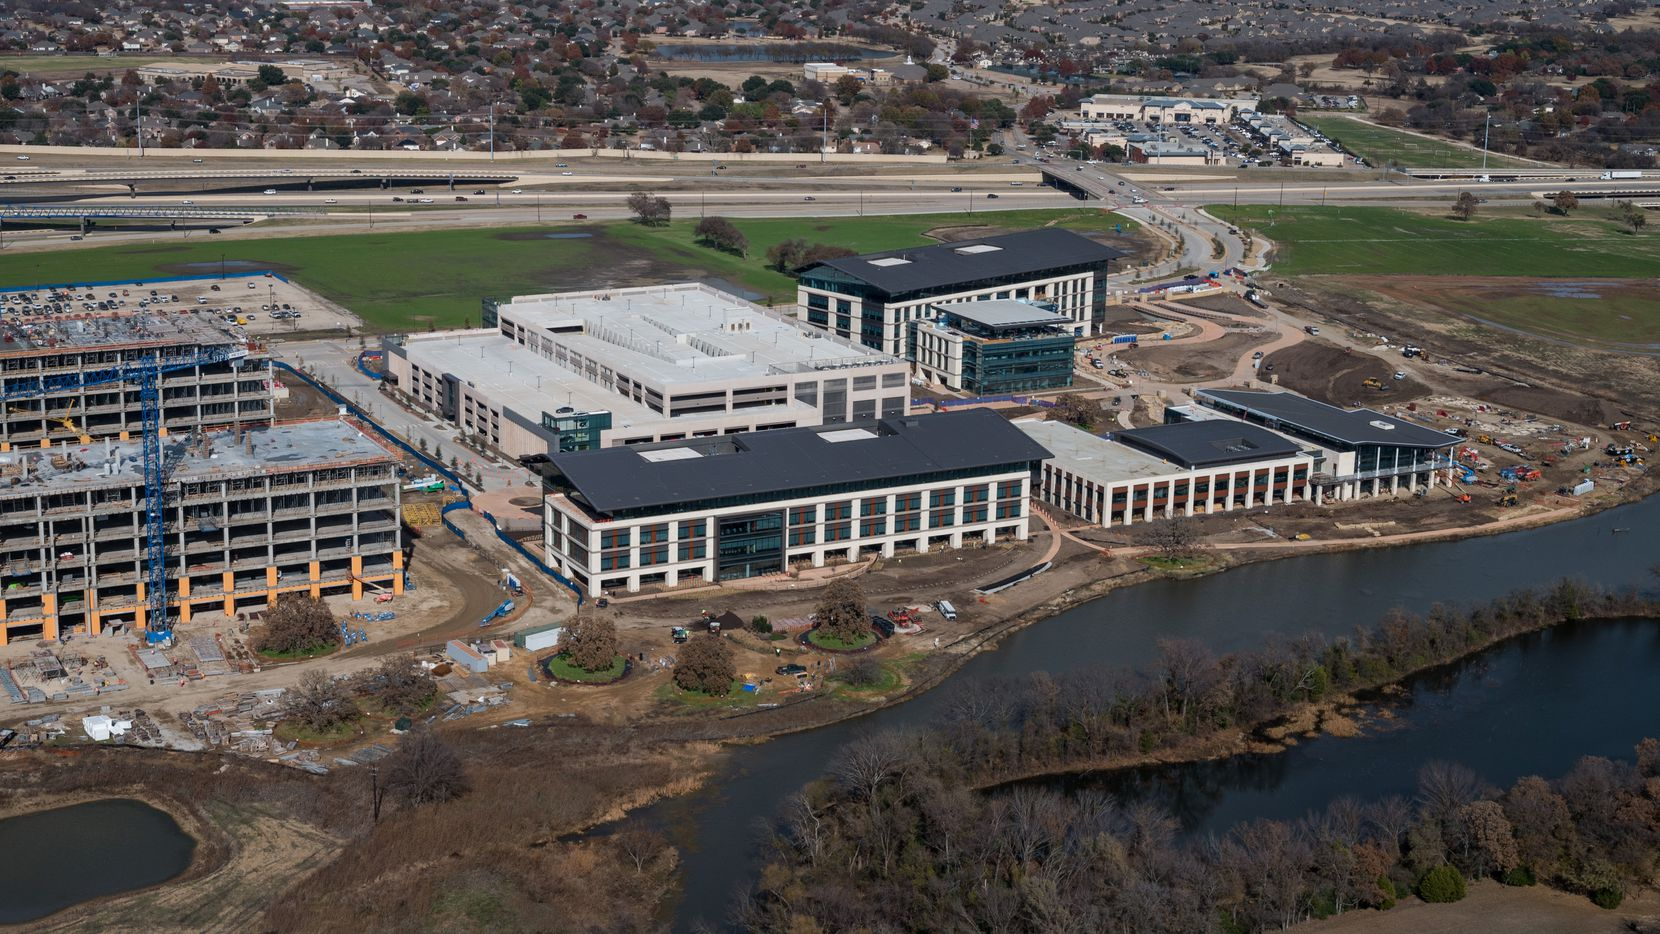 Charles Schwab's new Westlake headquarters is one of the additions to AllianceTexas.